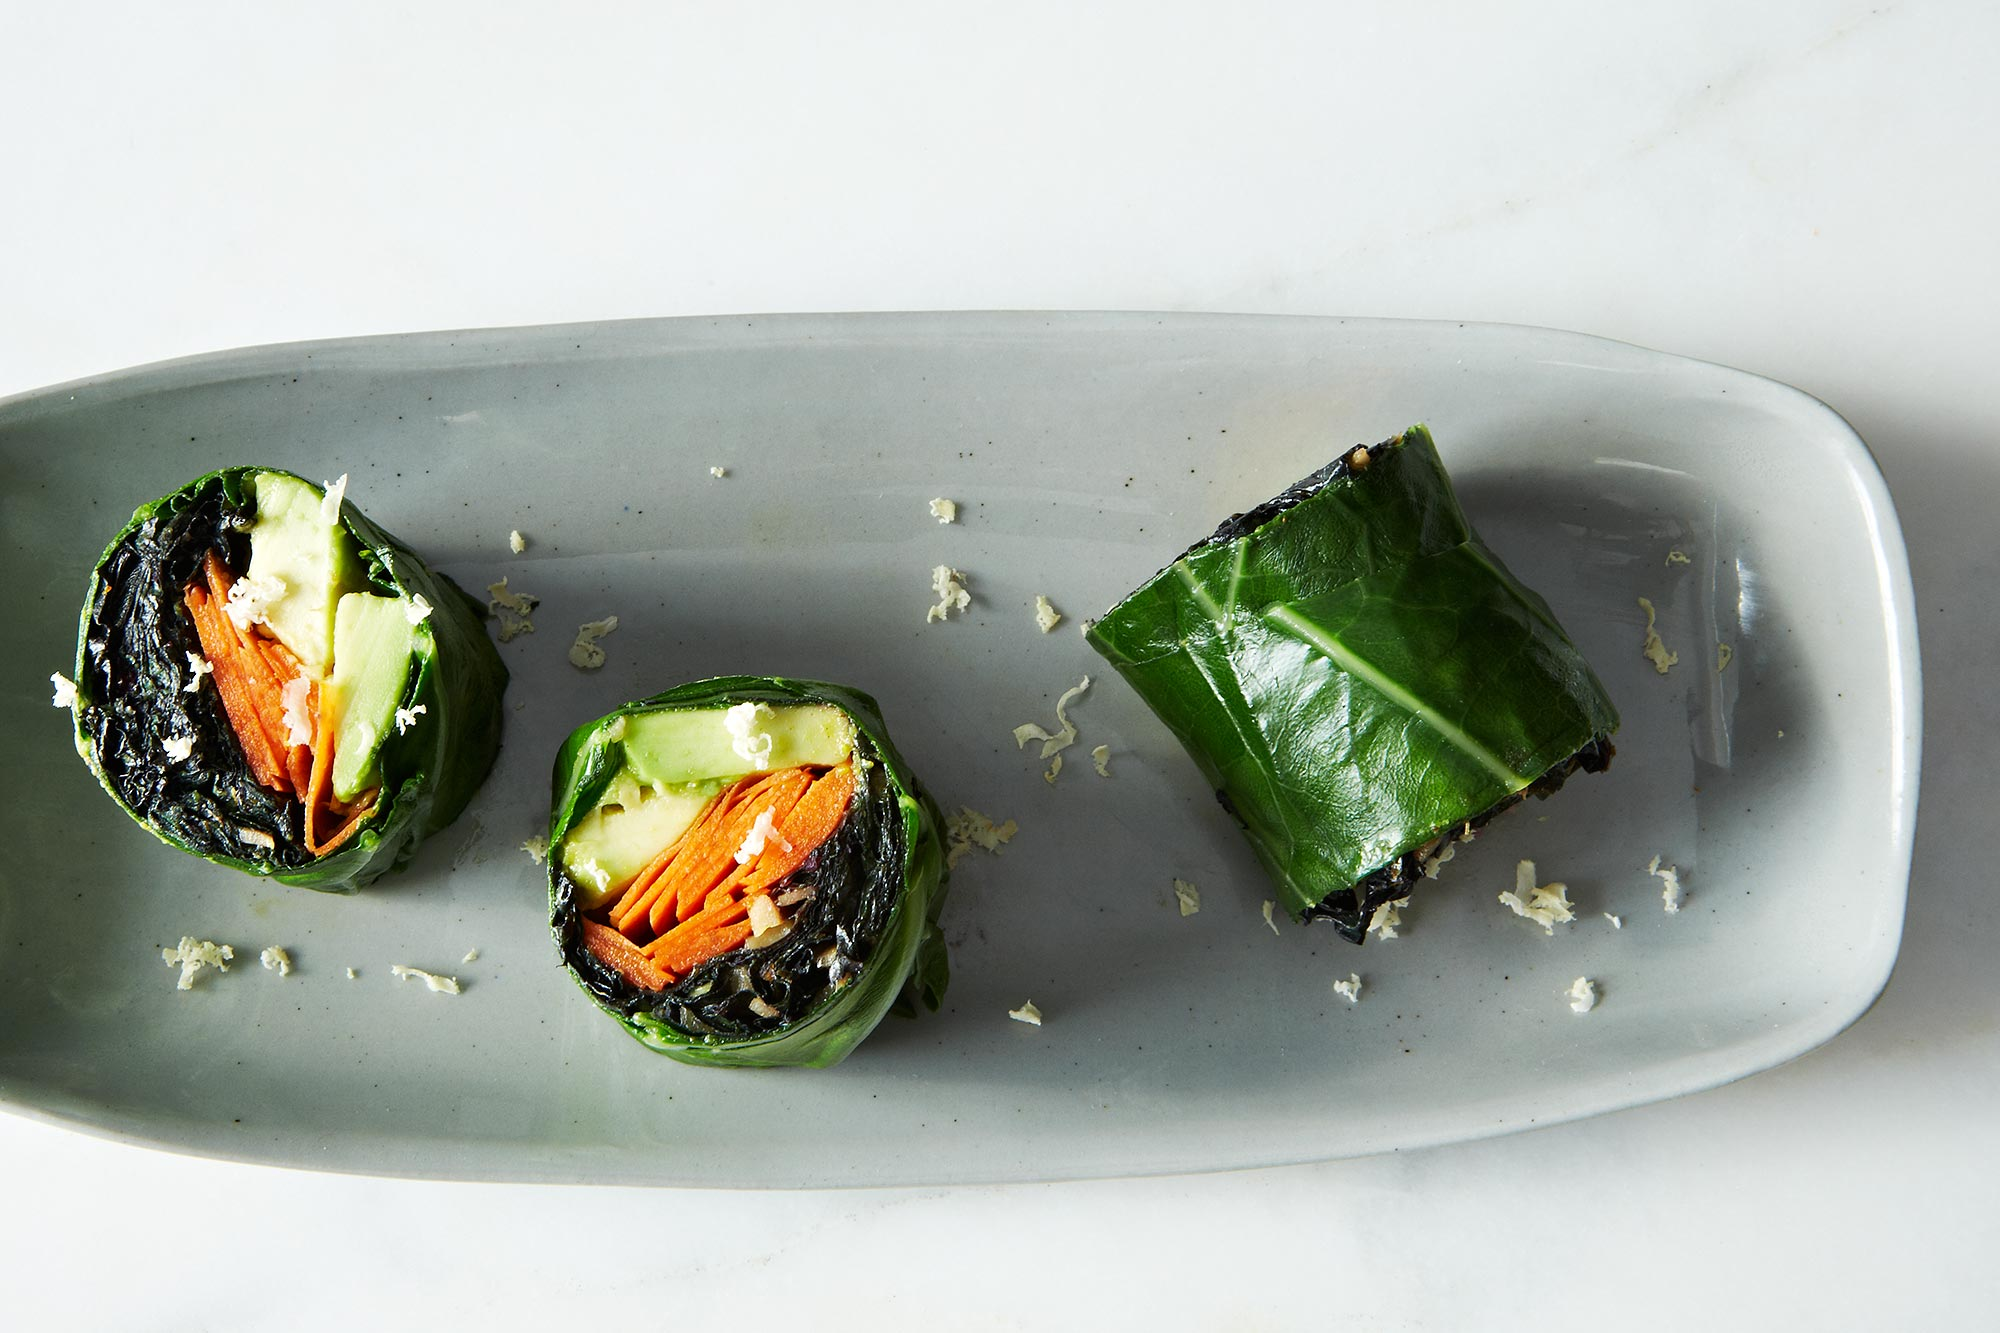 2014-0211_finalist_collard-roll-ups-coconut-curry-kale-051_(1)